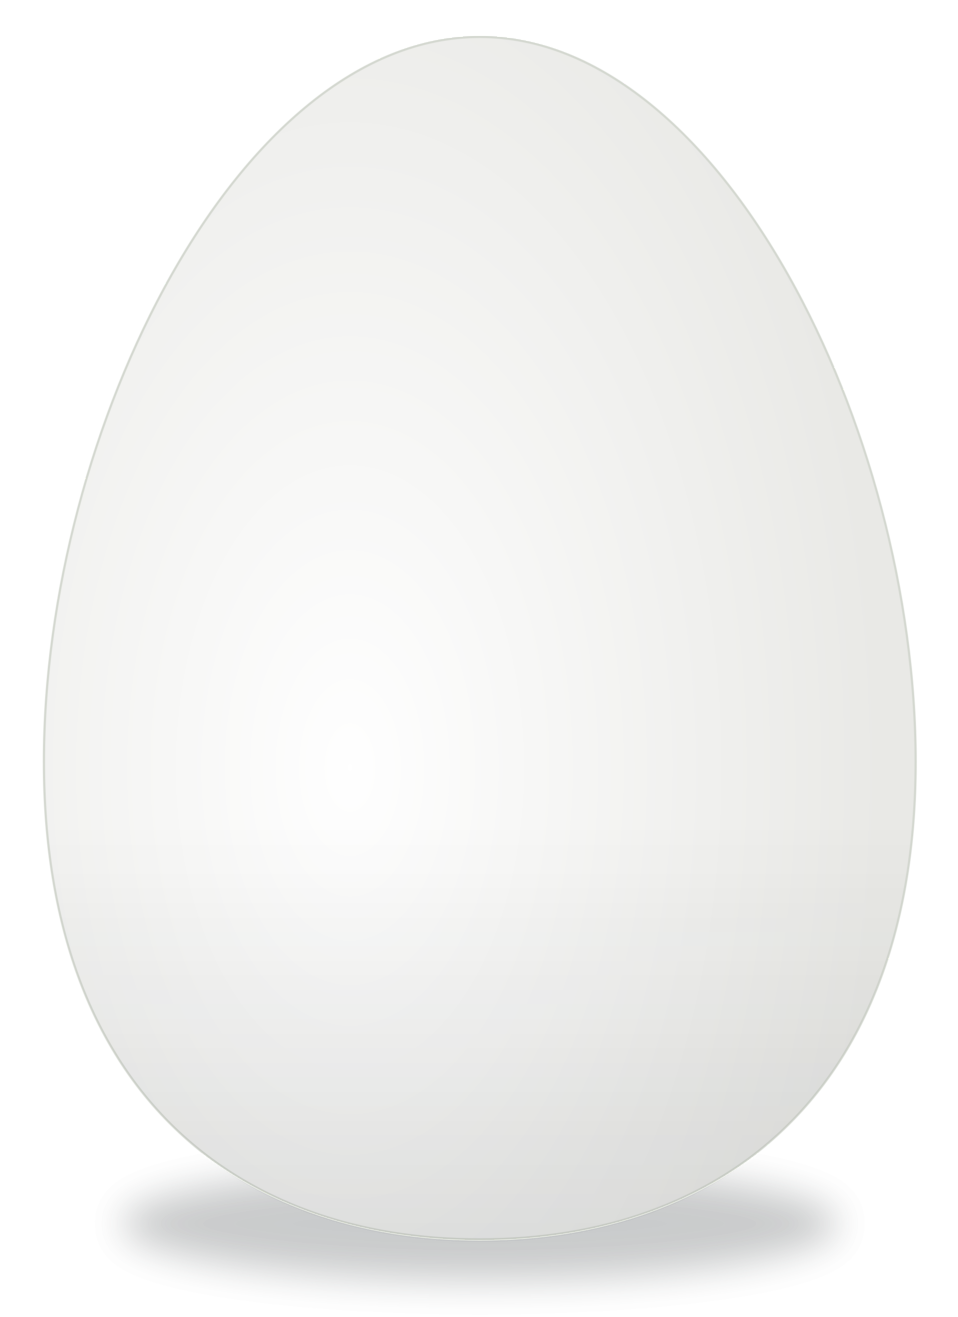 vector stock Png image purepng free. Eggs transparent one